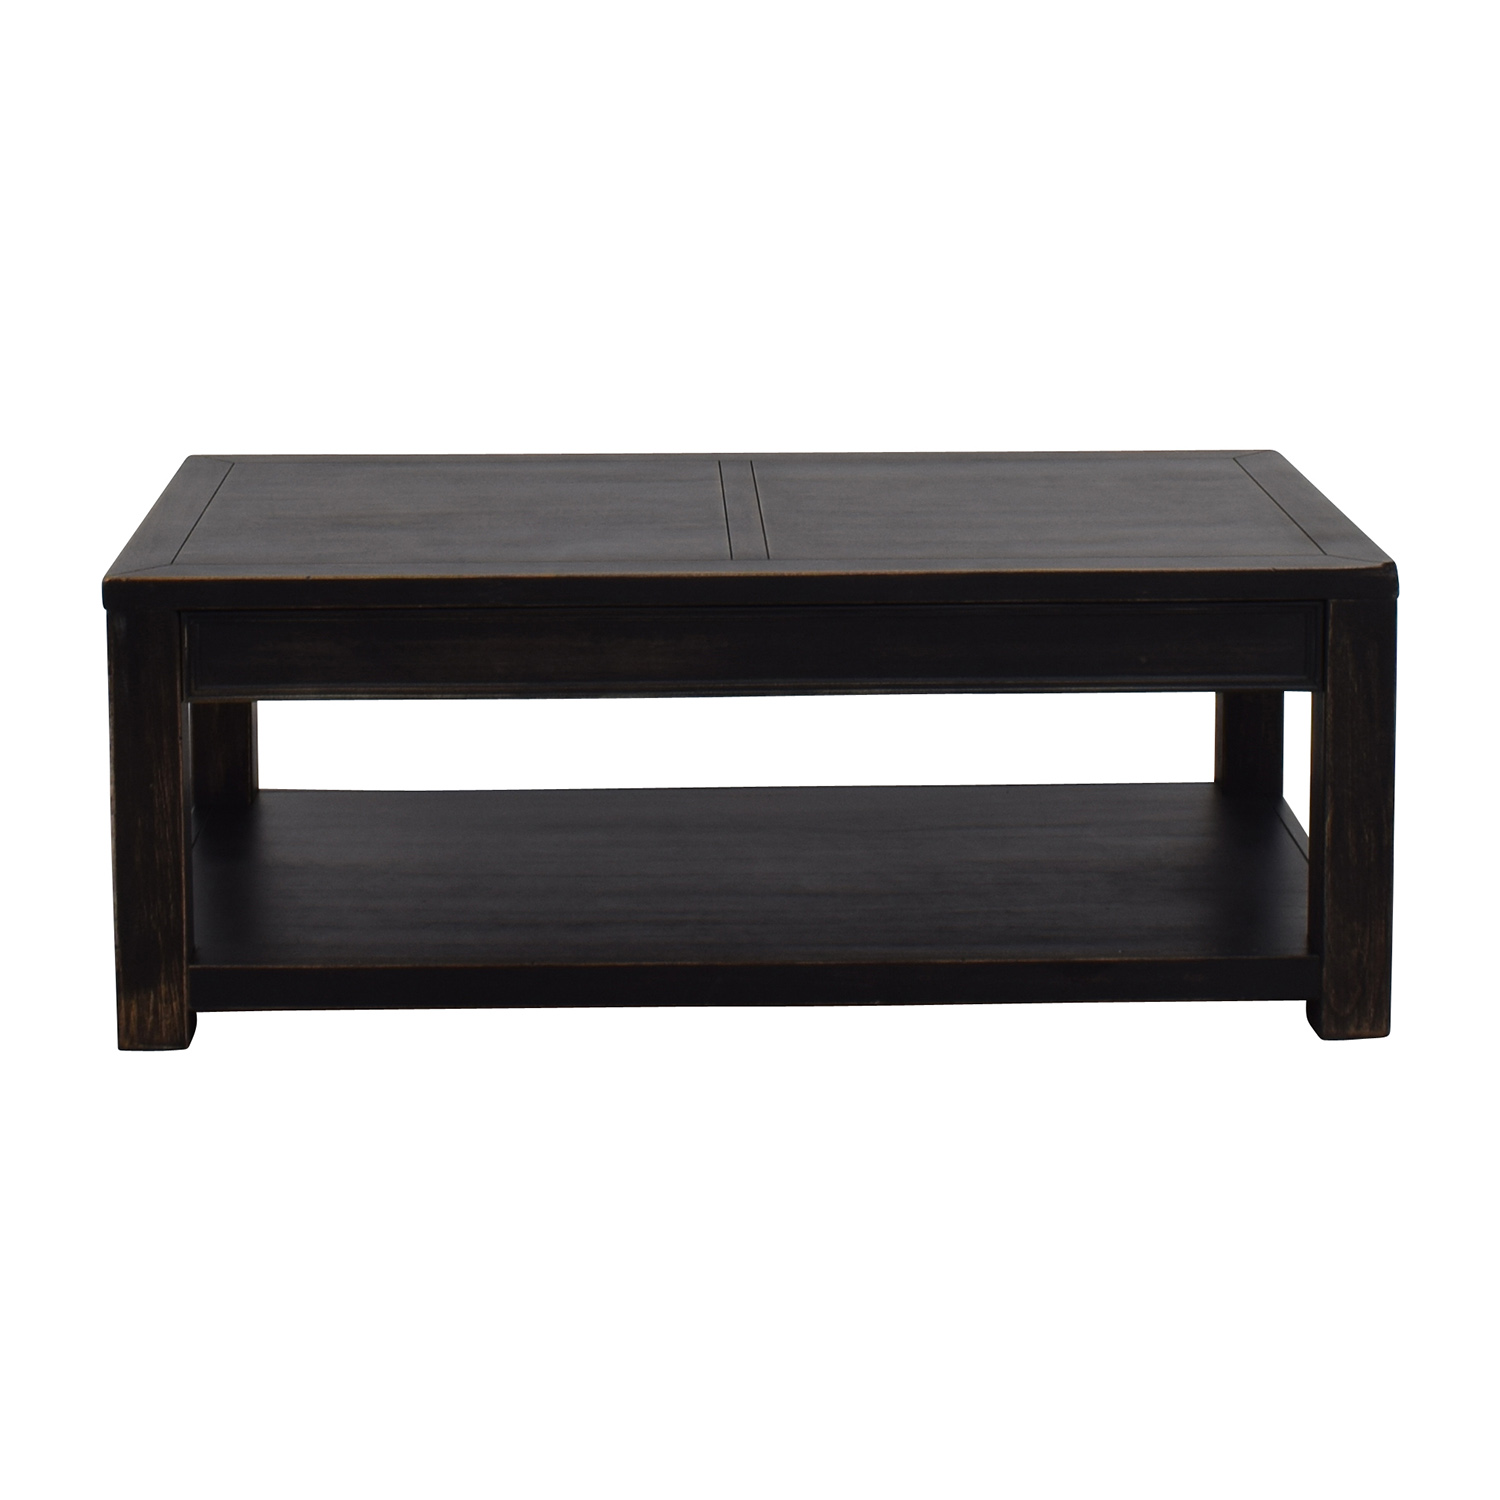 Groovy 77 Off Beachcrest Home Calvin By Beachcrest Home Black Coffee Table Tables Theyellowbook Wood Chair Design Ideas Theyellowbookinfo